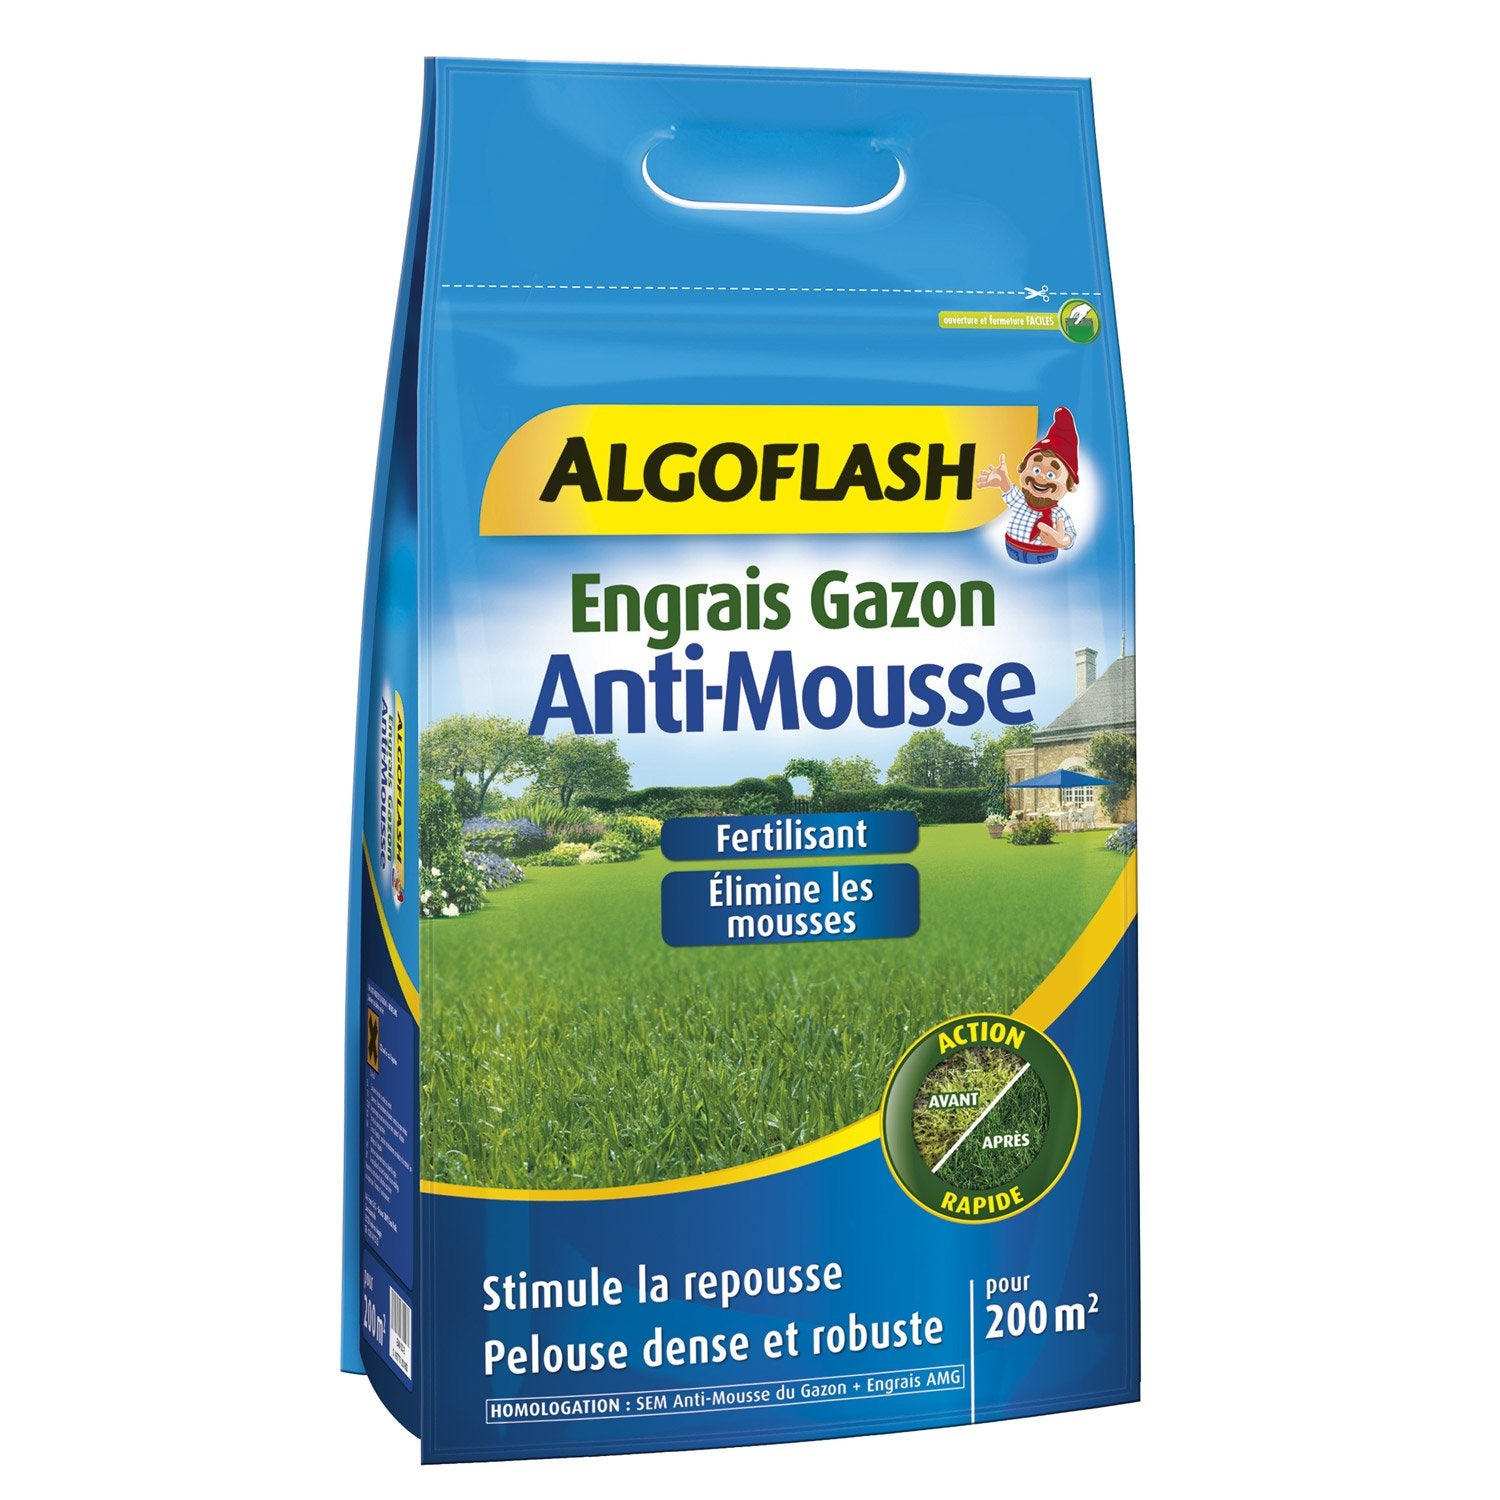 Engrais gazon anti mousse algoflash 12kg 200m2 leroy merlin - Produit anti mousse gazon ...